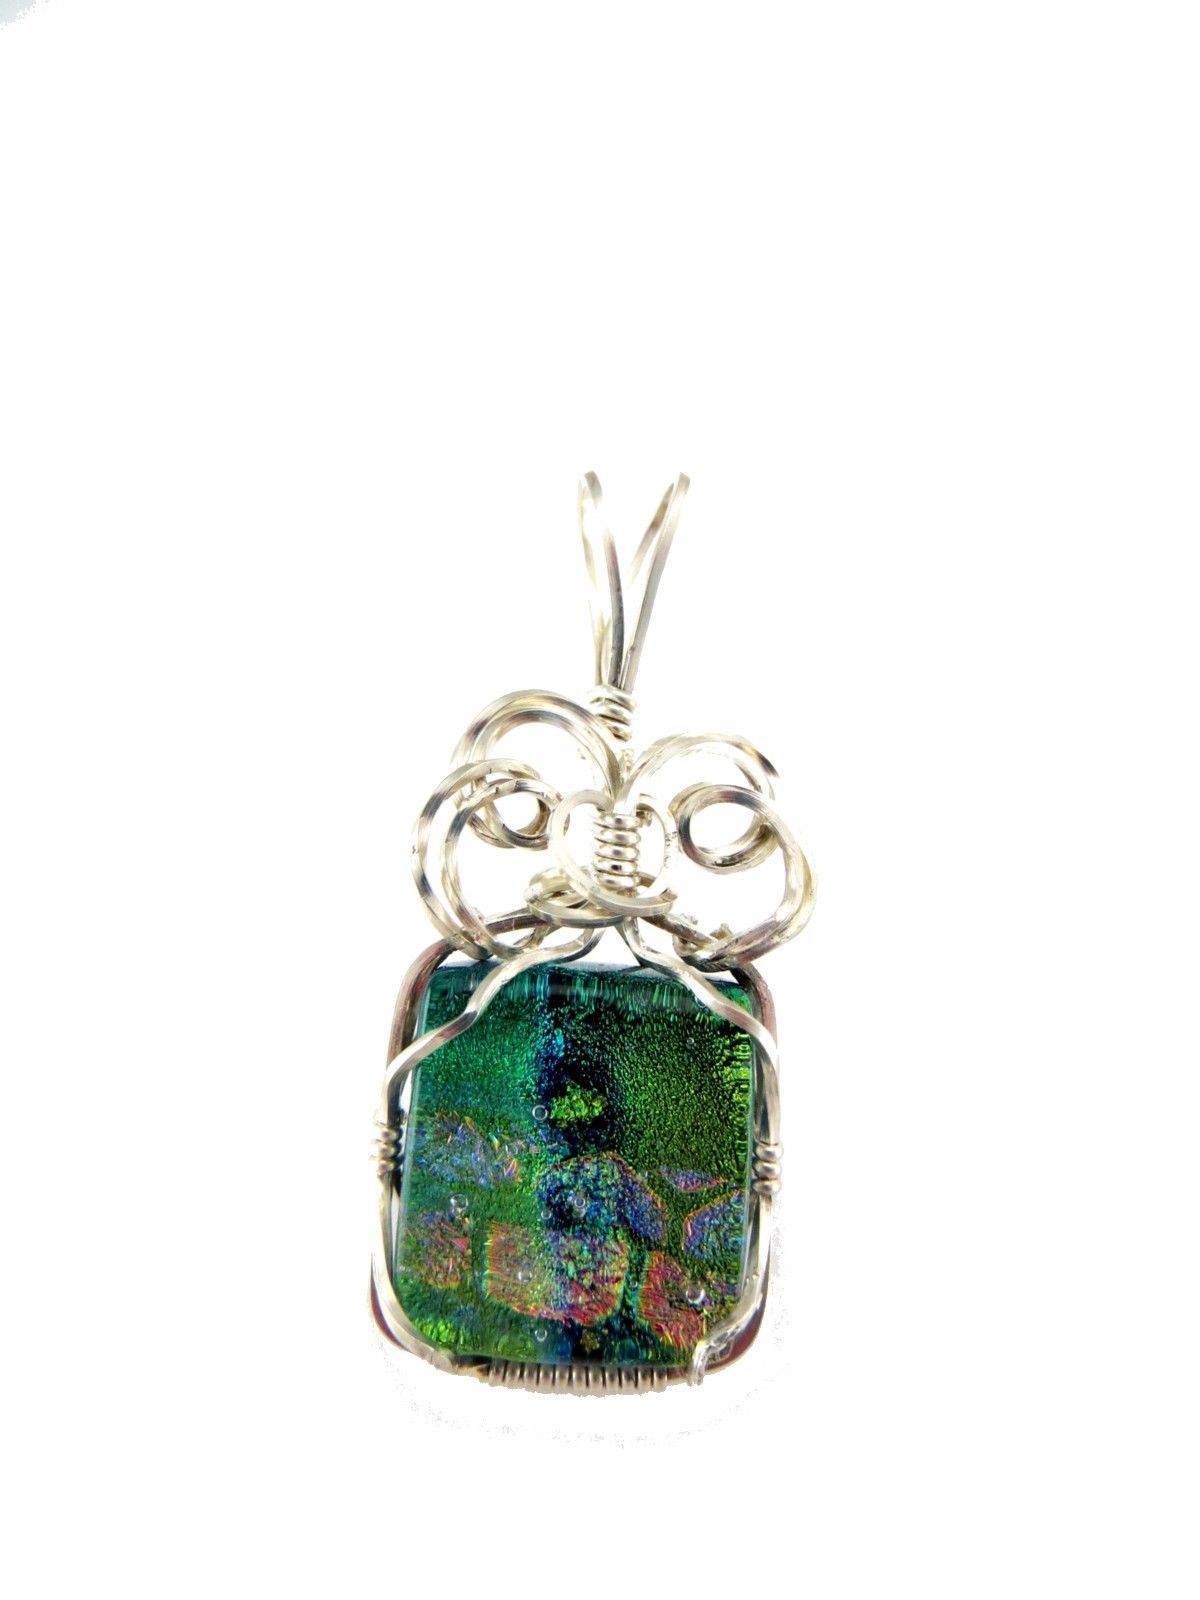 GREEN AQUA & PINK FUSED GLASS WIRE WRAP PENDANT SILVER WIRE WRAPPED - $41.58